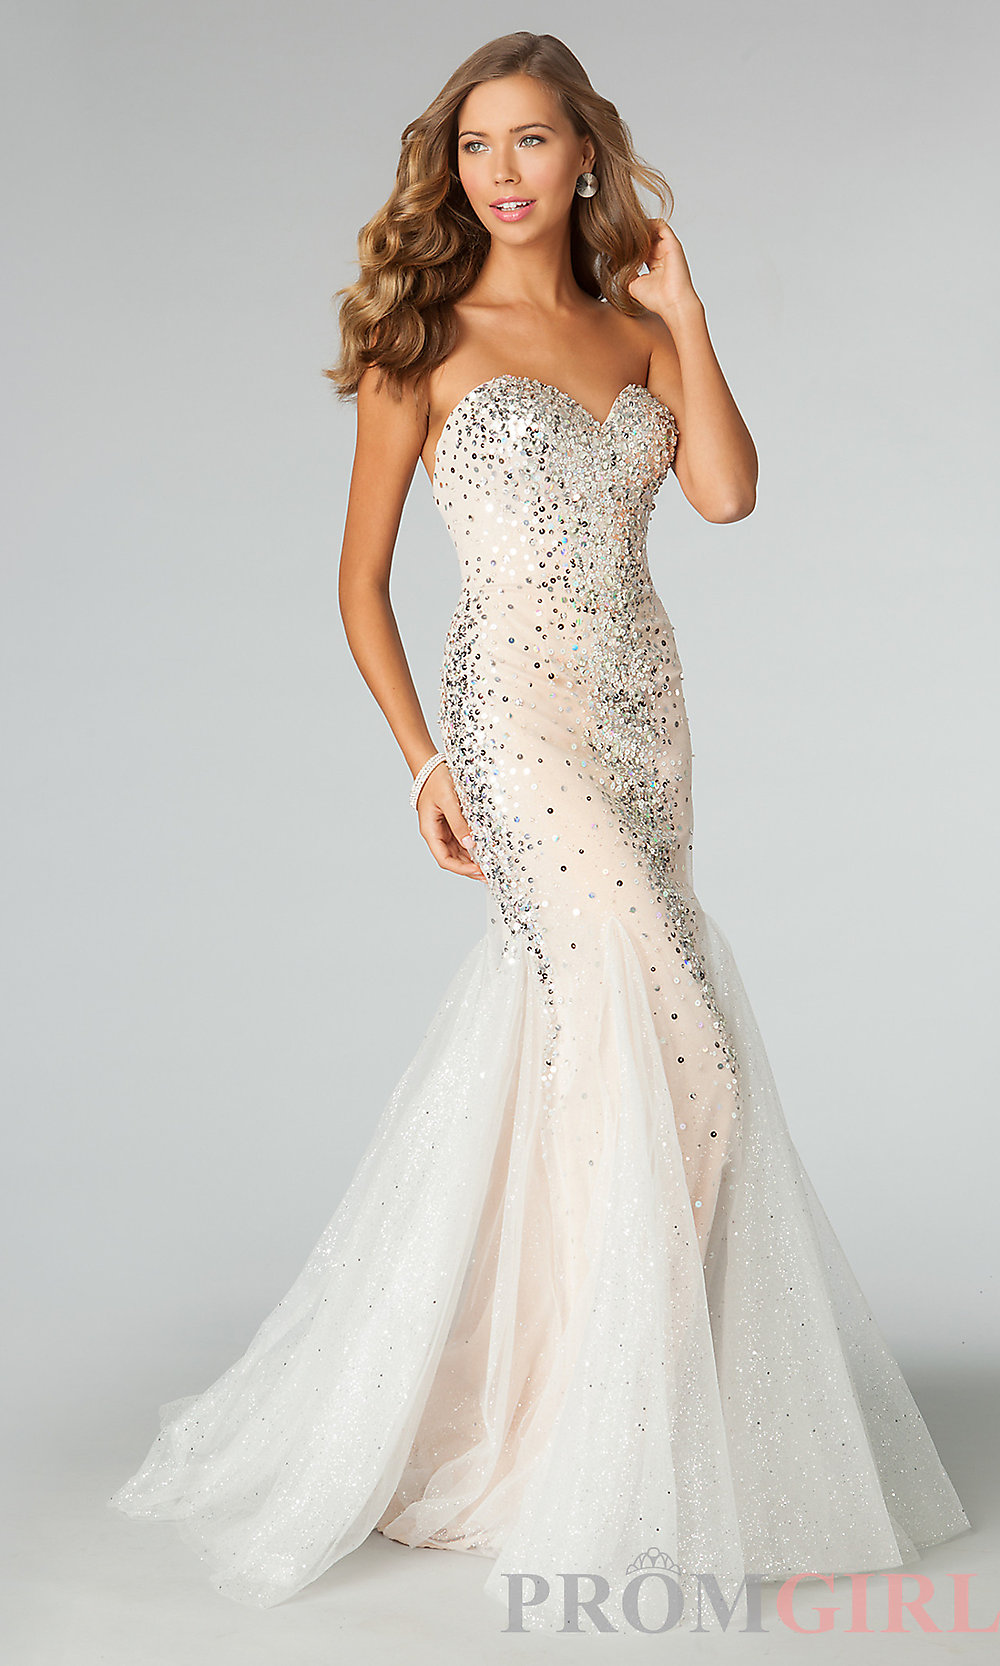 tips and ideas for selecting an ideal dress for a party